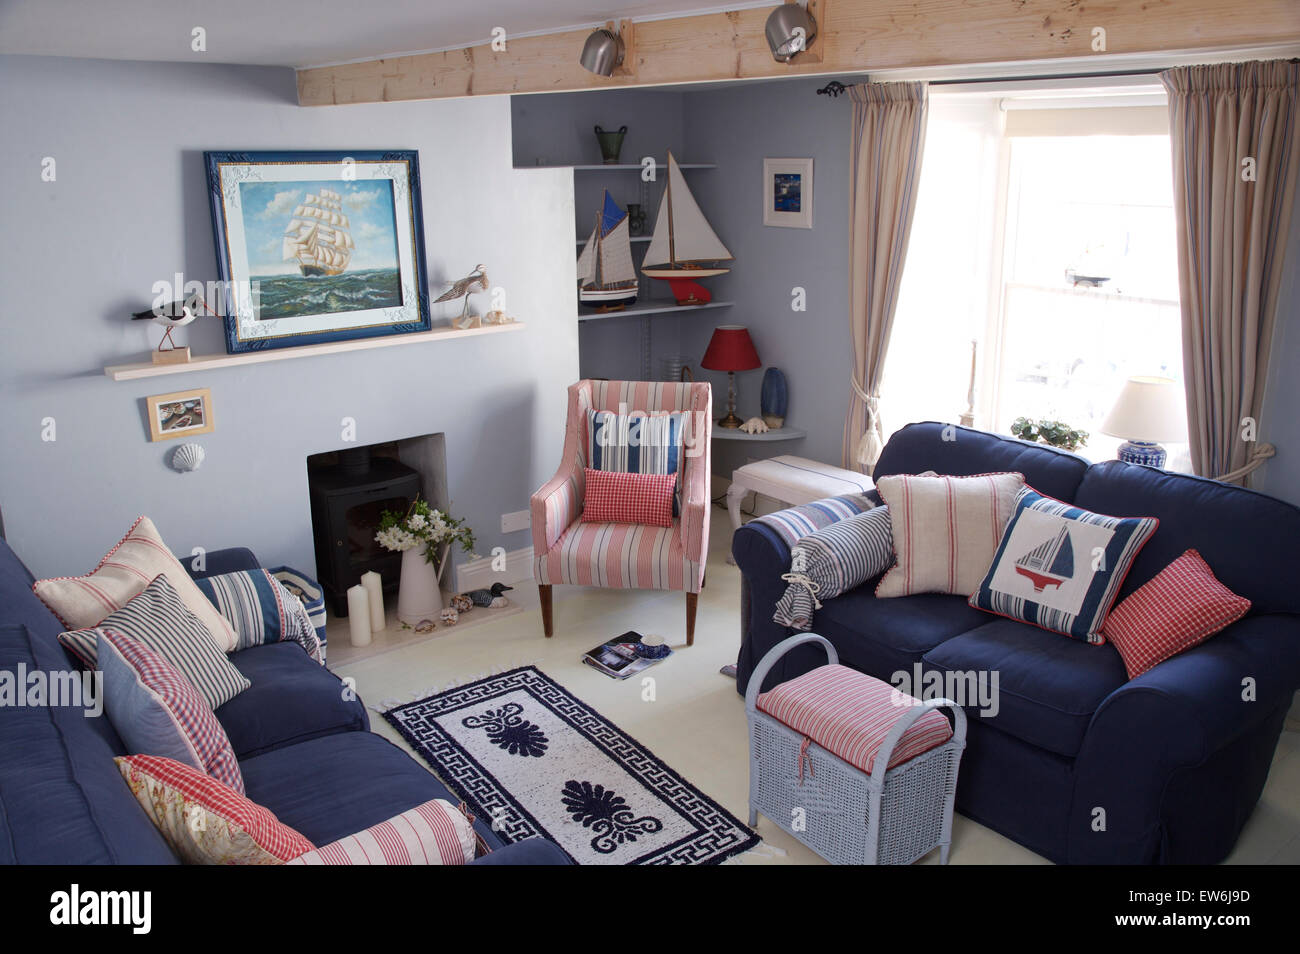 Blue Sofas With Striped Cushions In Coastal Cottage Sitting